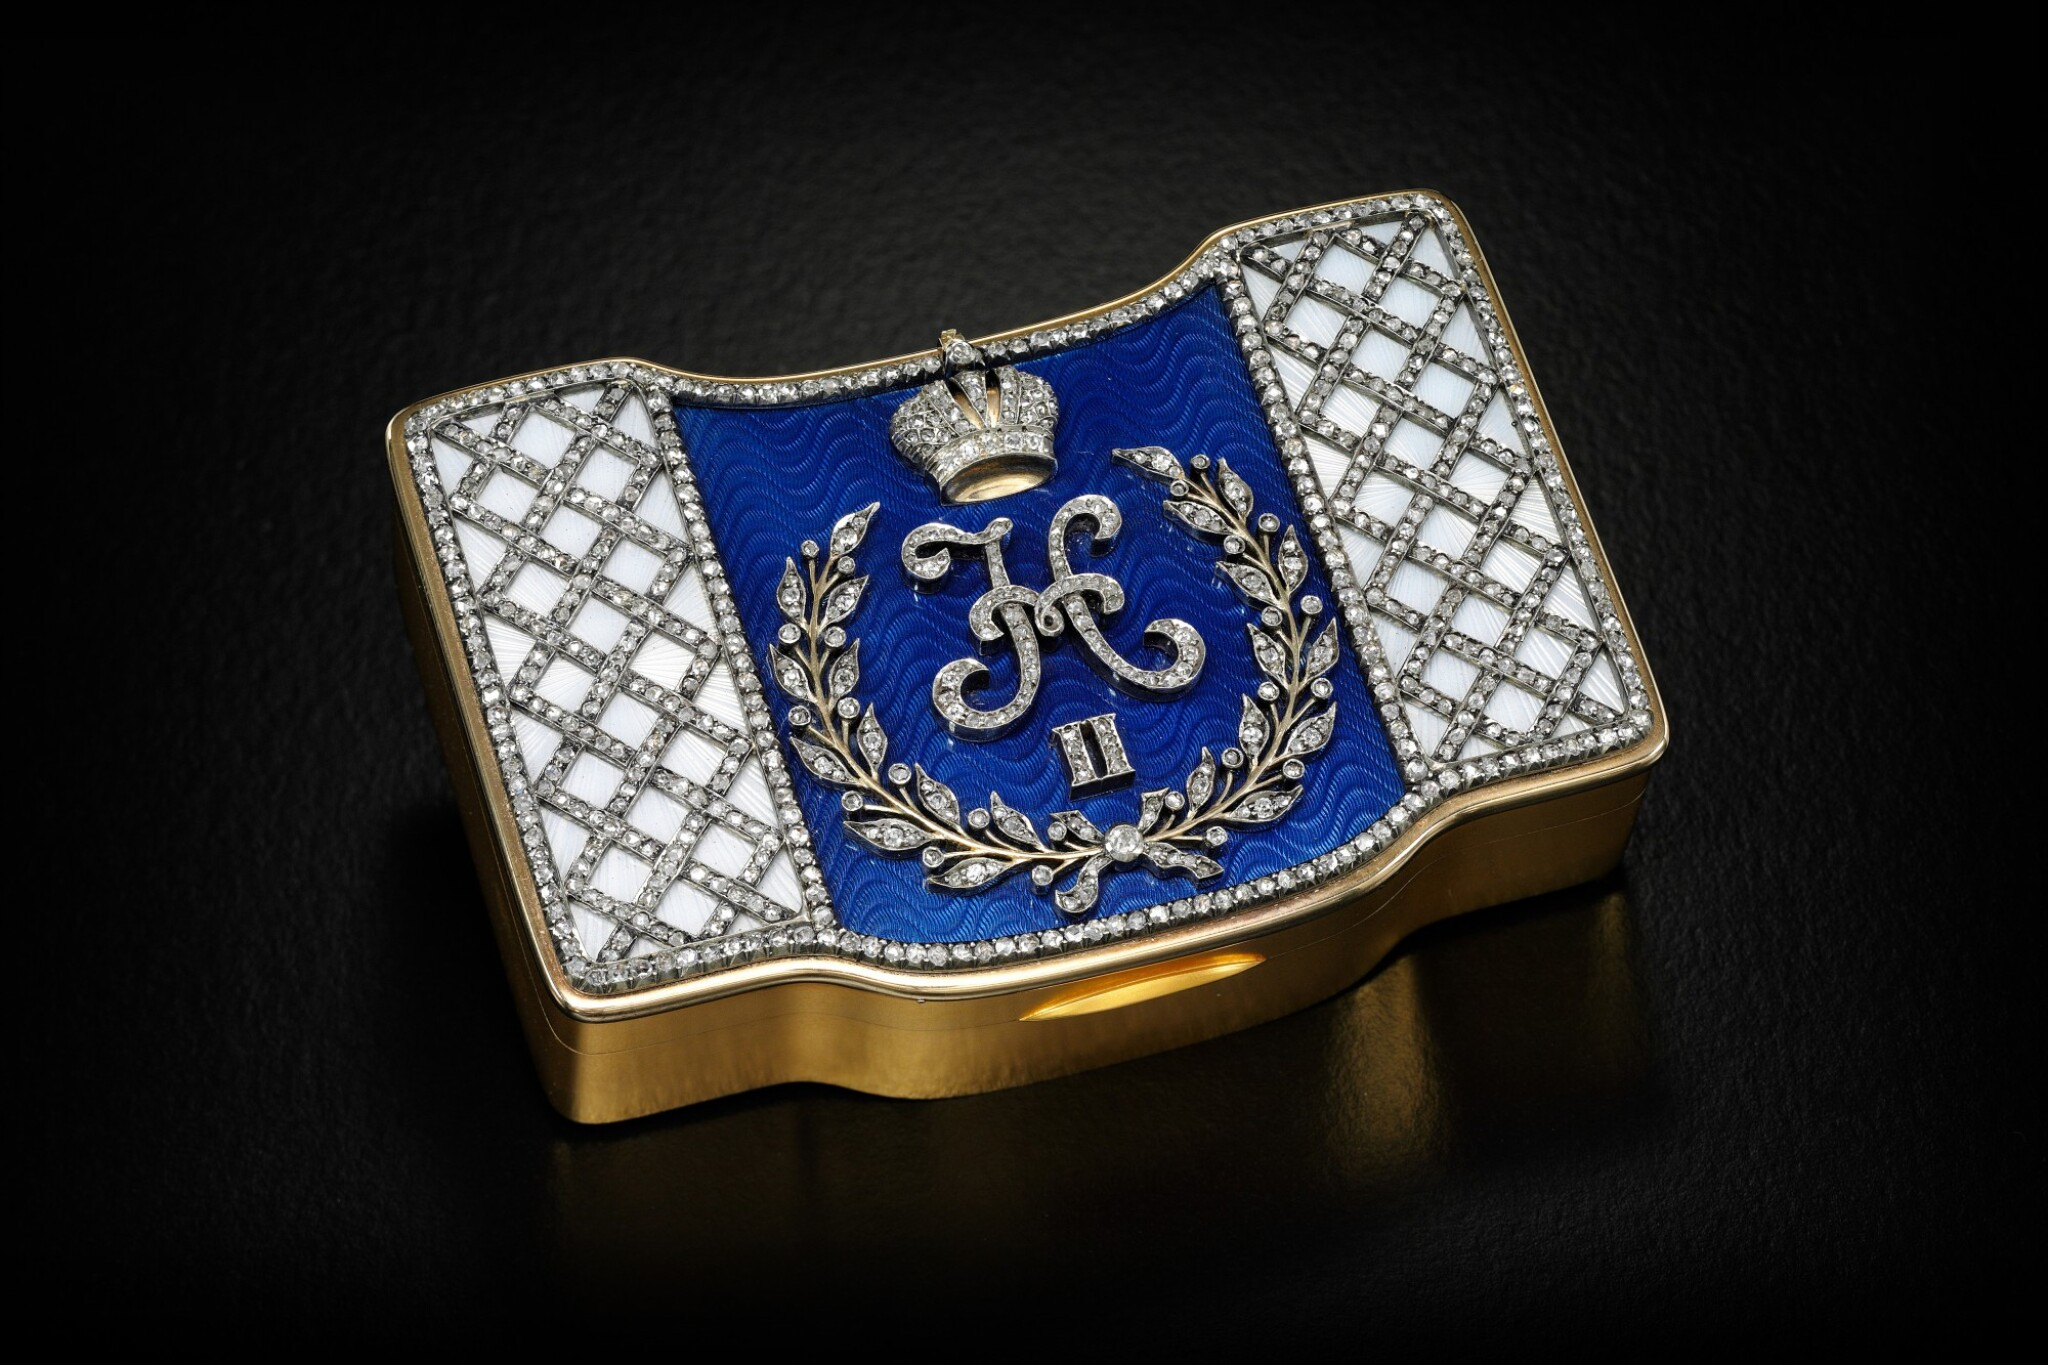 View full screen - View 1 of Lot 5. An Important Imperial Presentation jewelled gold and guilloché enamel snuffbox, workmaster Nikolai Chernokov, Bolin, St Petersburg, 1908-1917.